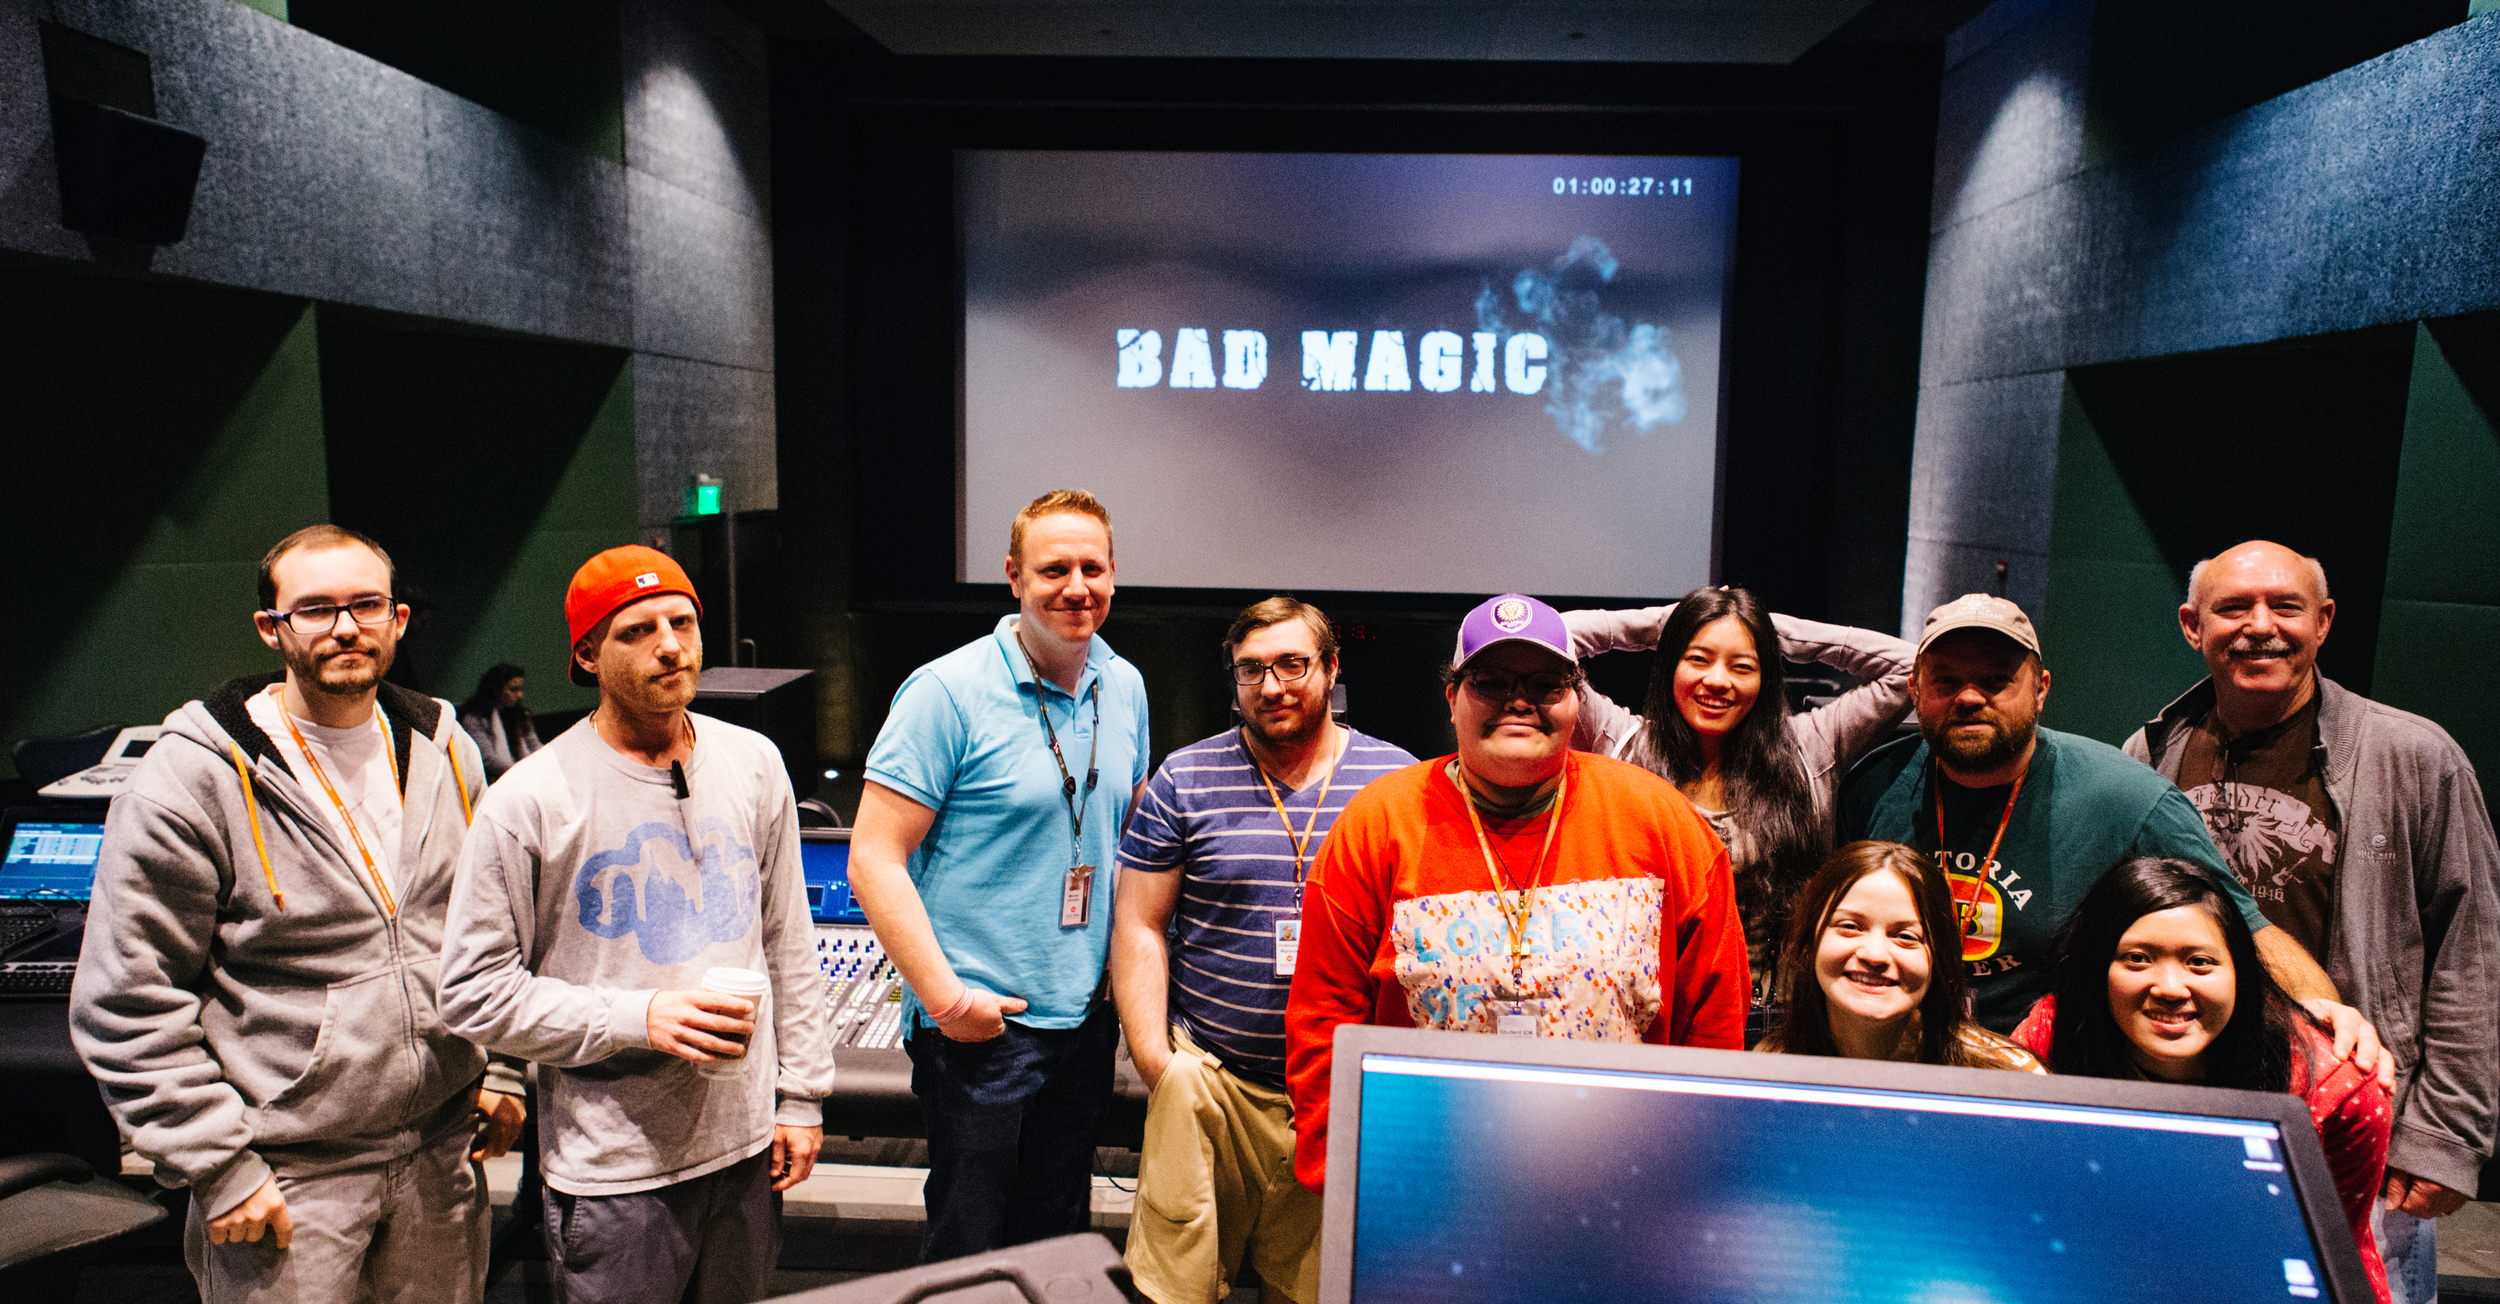 The Crew of Bad Magic with our amazing sound mixer / professor Academy Award winner Bill Benton!